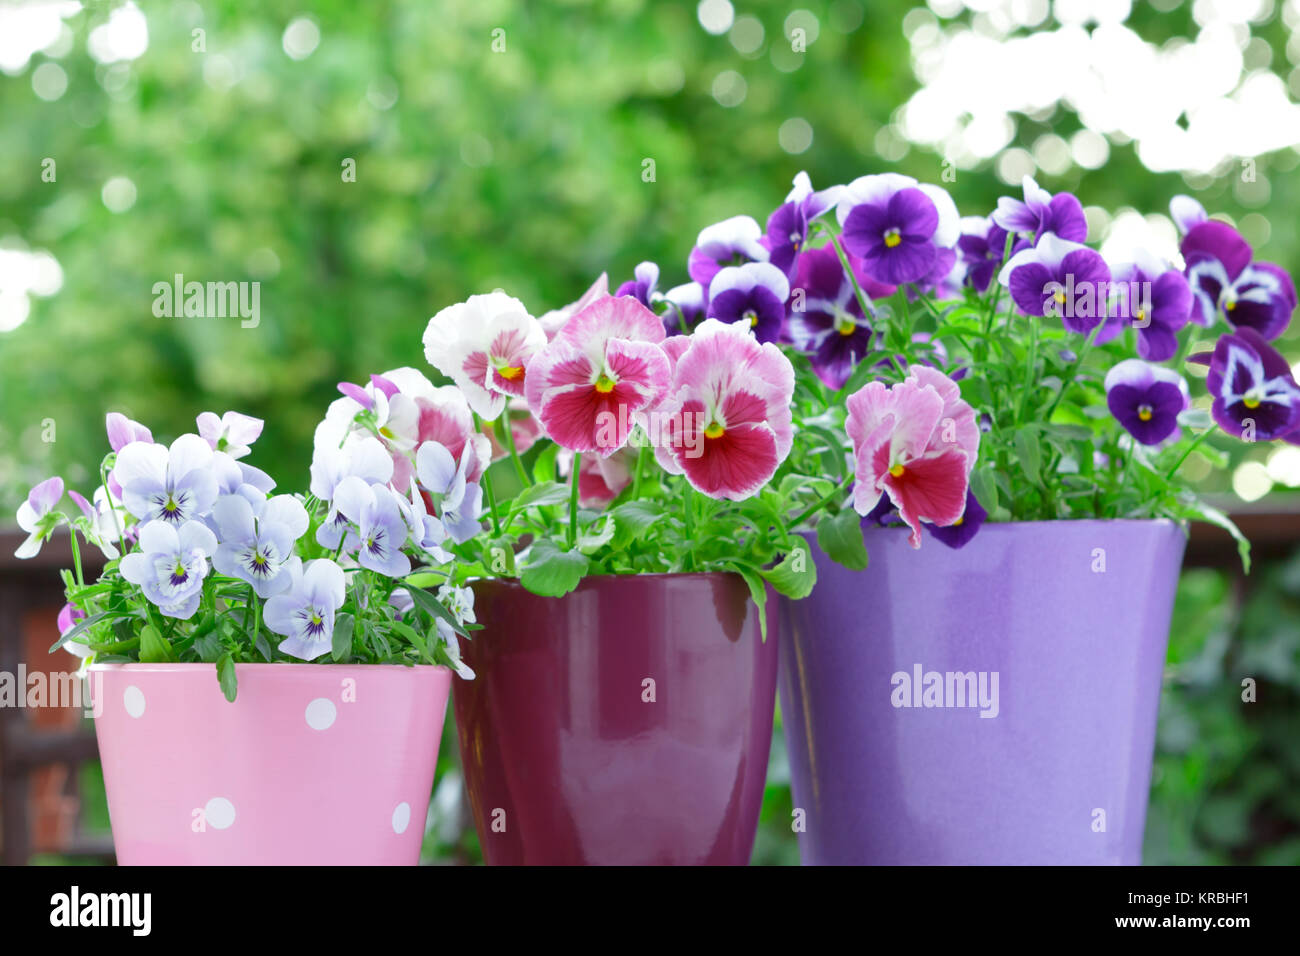 purple lilac red pansies pots balcony - Stock Image